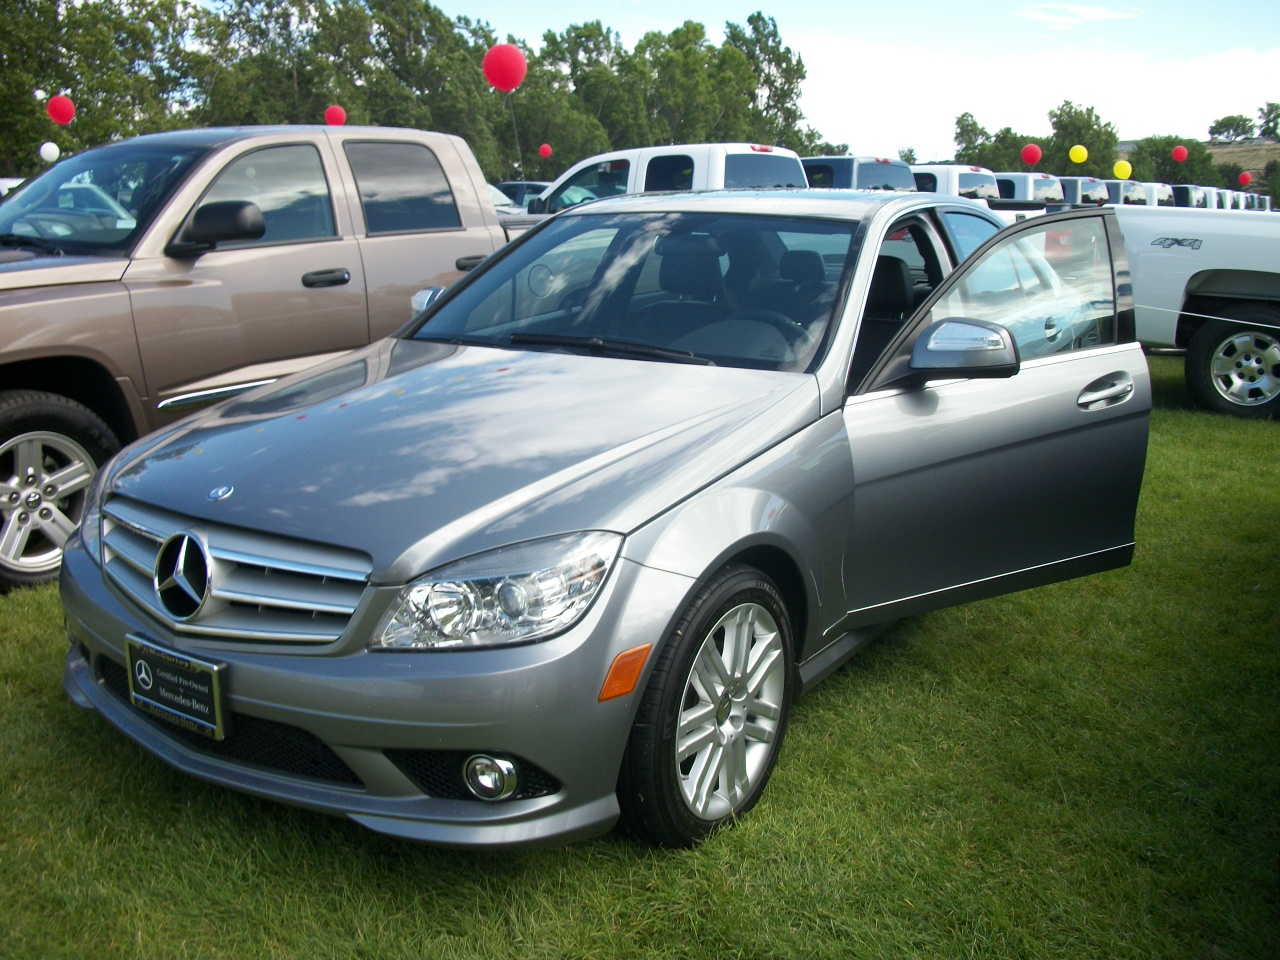 mccurley integrity dealerships a great success ForMccurley Mercedes Benz